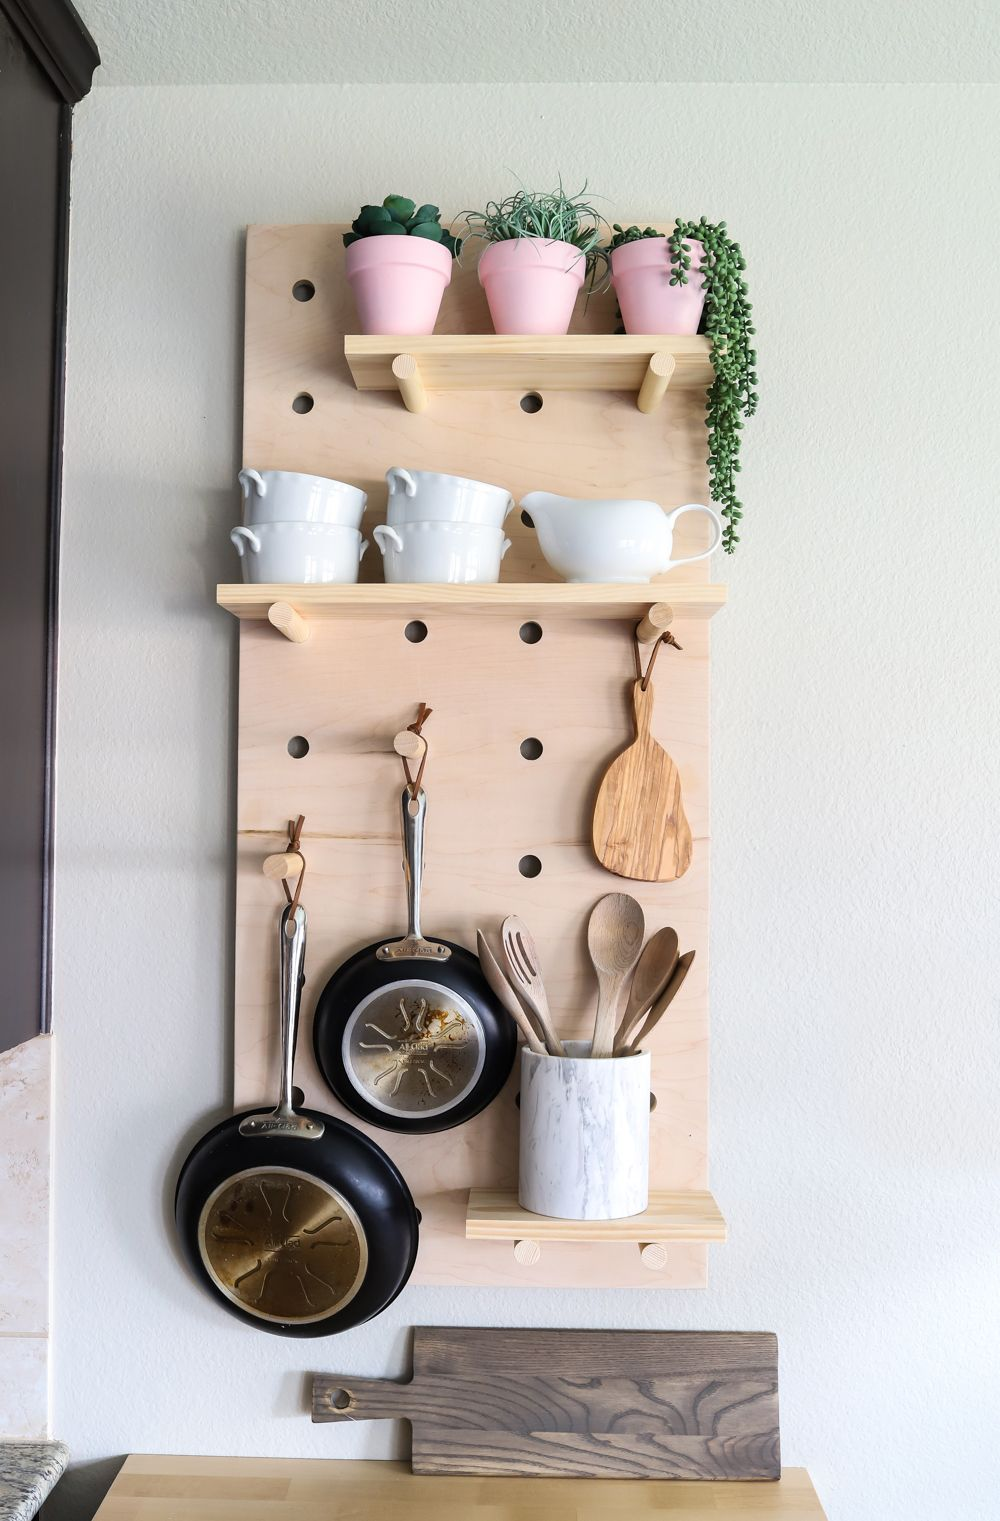 Oversized pegboard shelves shelves kitchens and woodworking